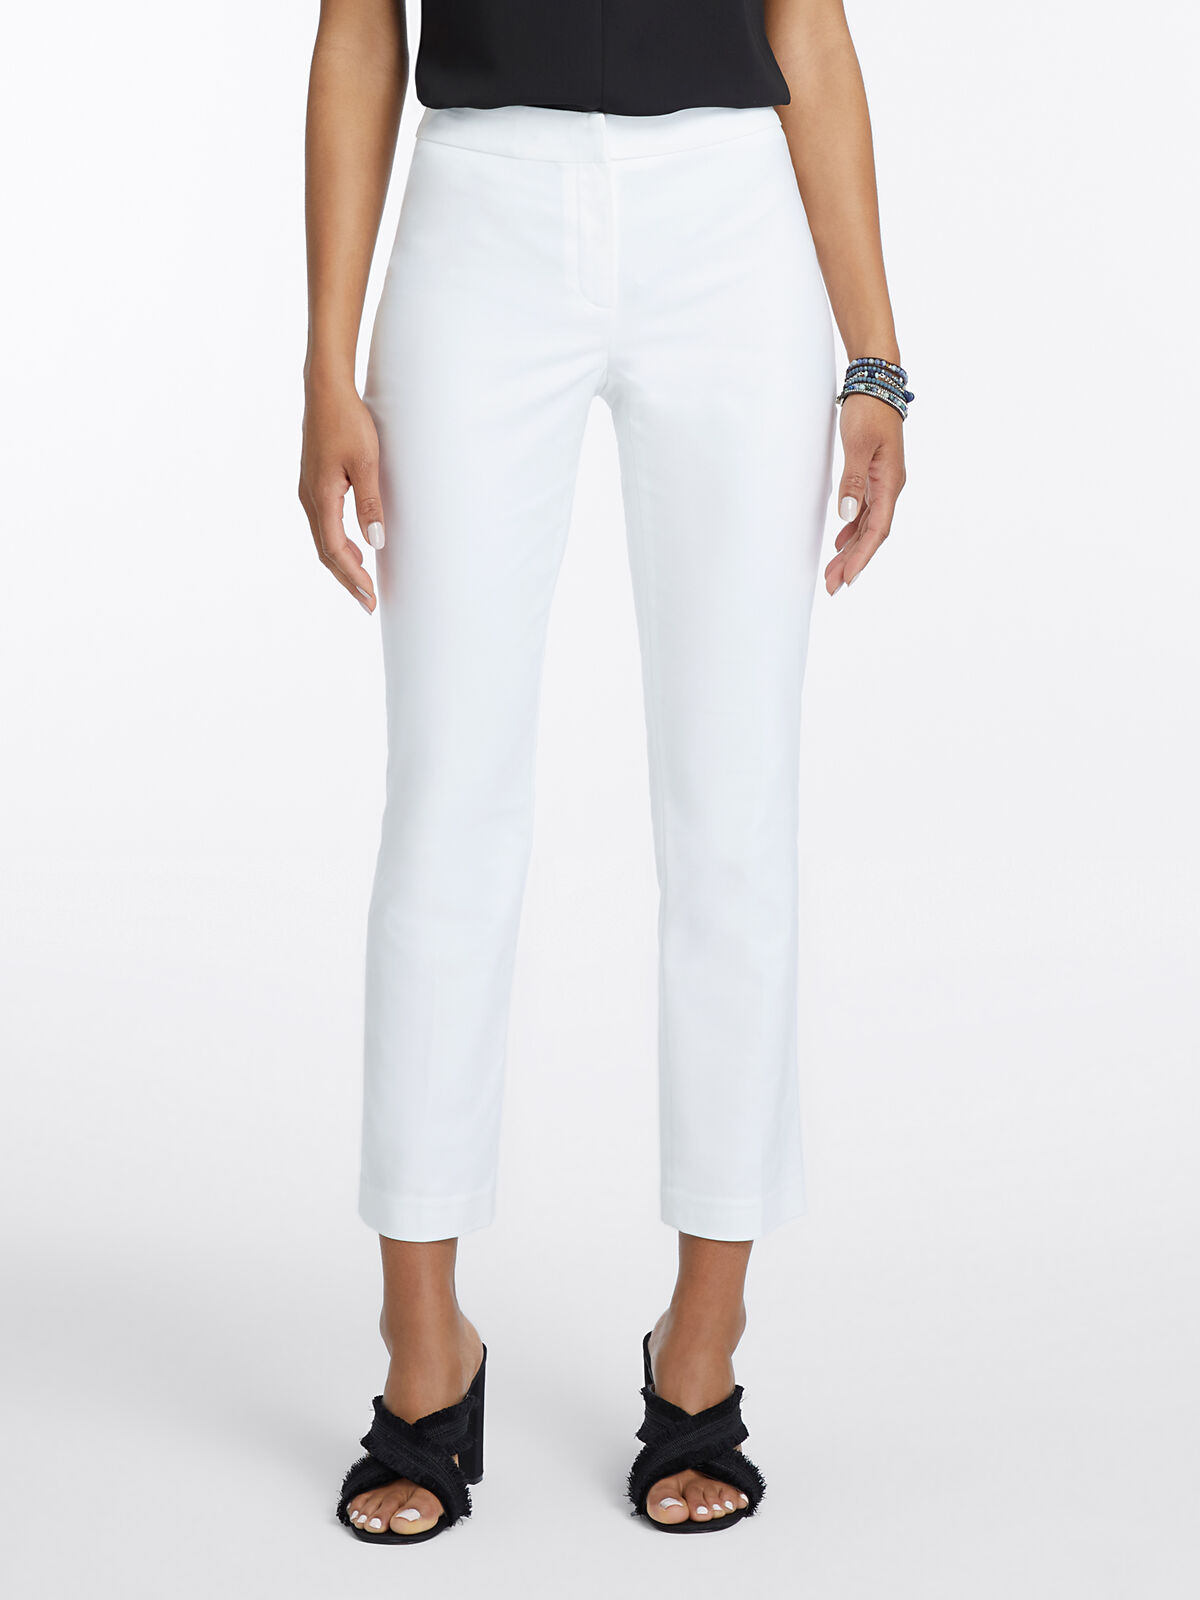 Perfect Pant Front Zip Ankle